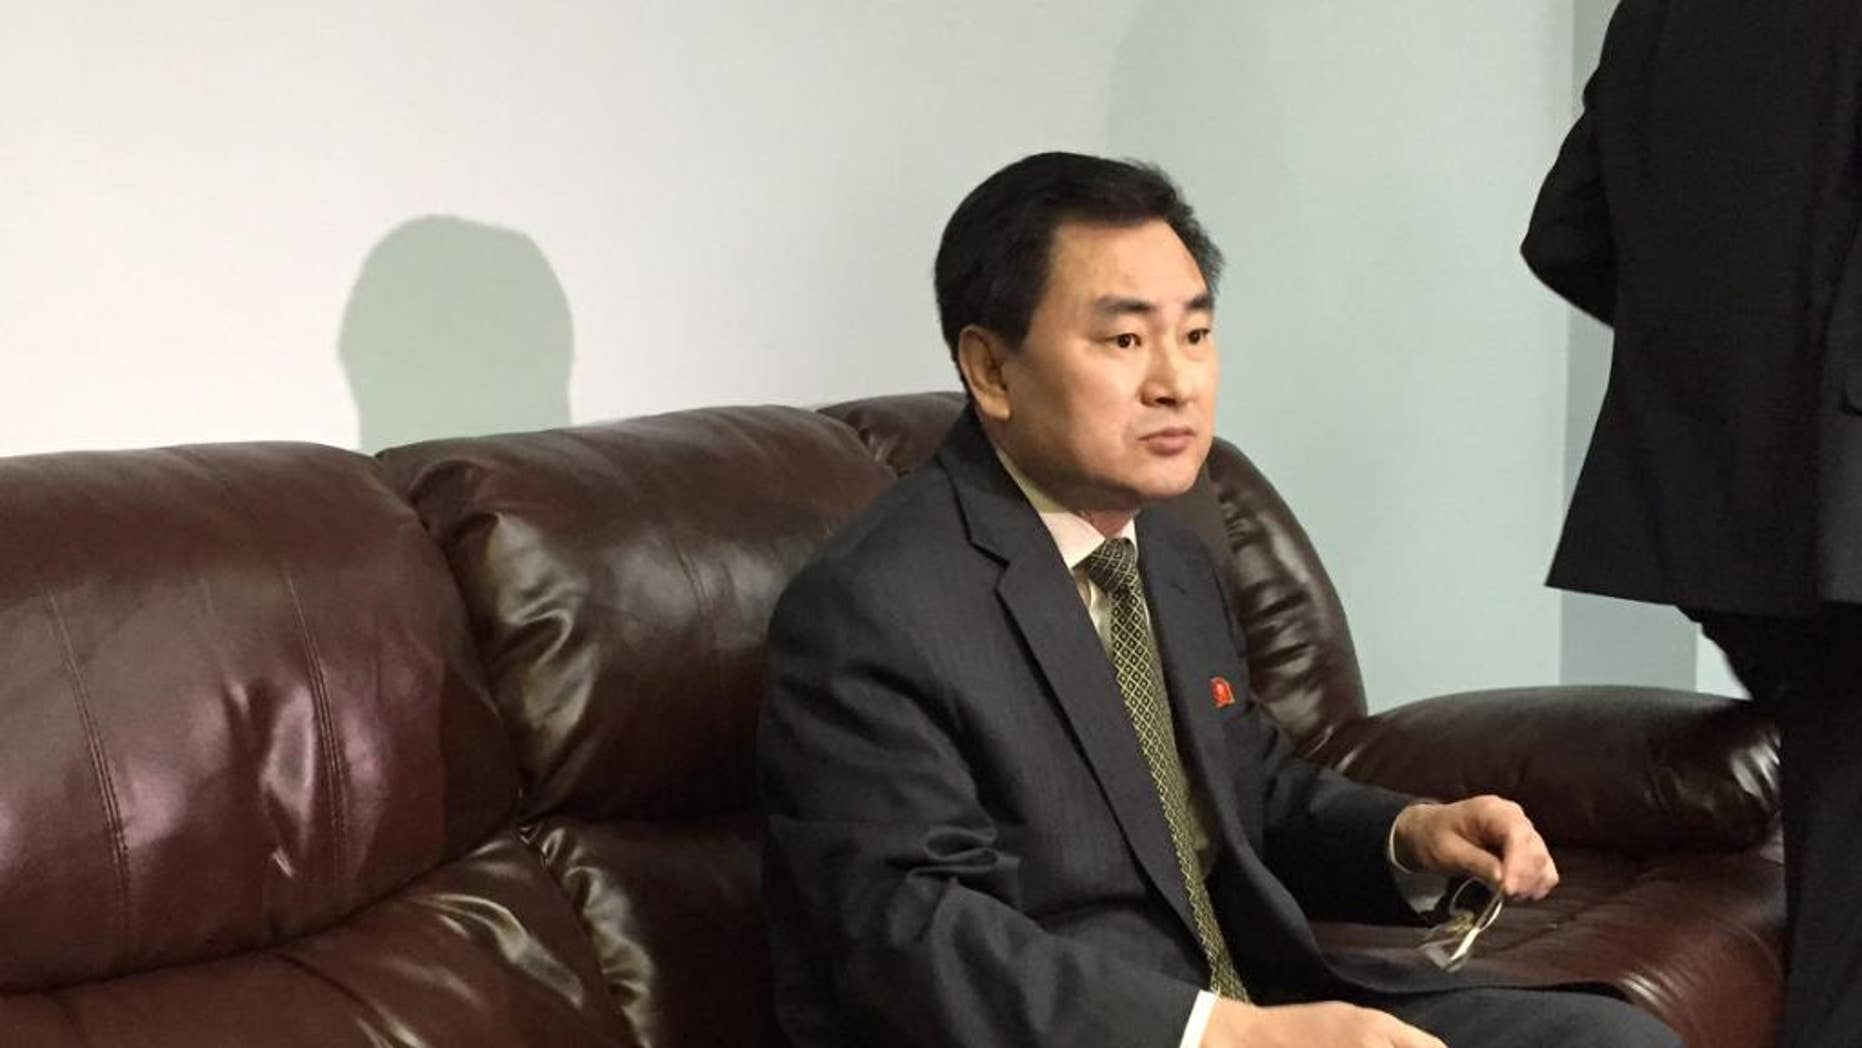 """North Korea's deputy permanent representative to the United Nations, An Myong Hun, waits to speak to reporters at North Korea's U.N. mission in New York, Wednesday April 8, 2015. Hun said Mexico has """"forcibly detained"""" one of its ships months after it ran aground off Mexico's Gulf coast and that his country will take unspecified """"necessary measures to make the ship leave immediately."""" An Myong Hun said the ship, the Mu Du Bong, was not carrying anything prohibited by U.N. sanctions and that more than 50 crew remain on board. (AP Photo/Cara Anna)"""